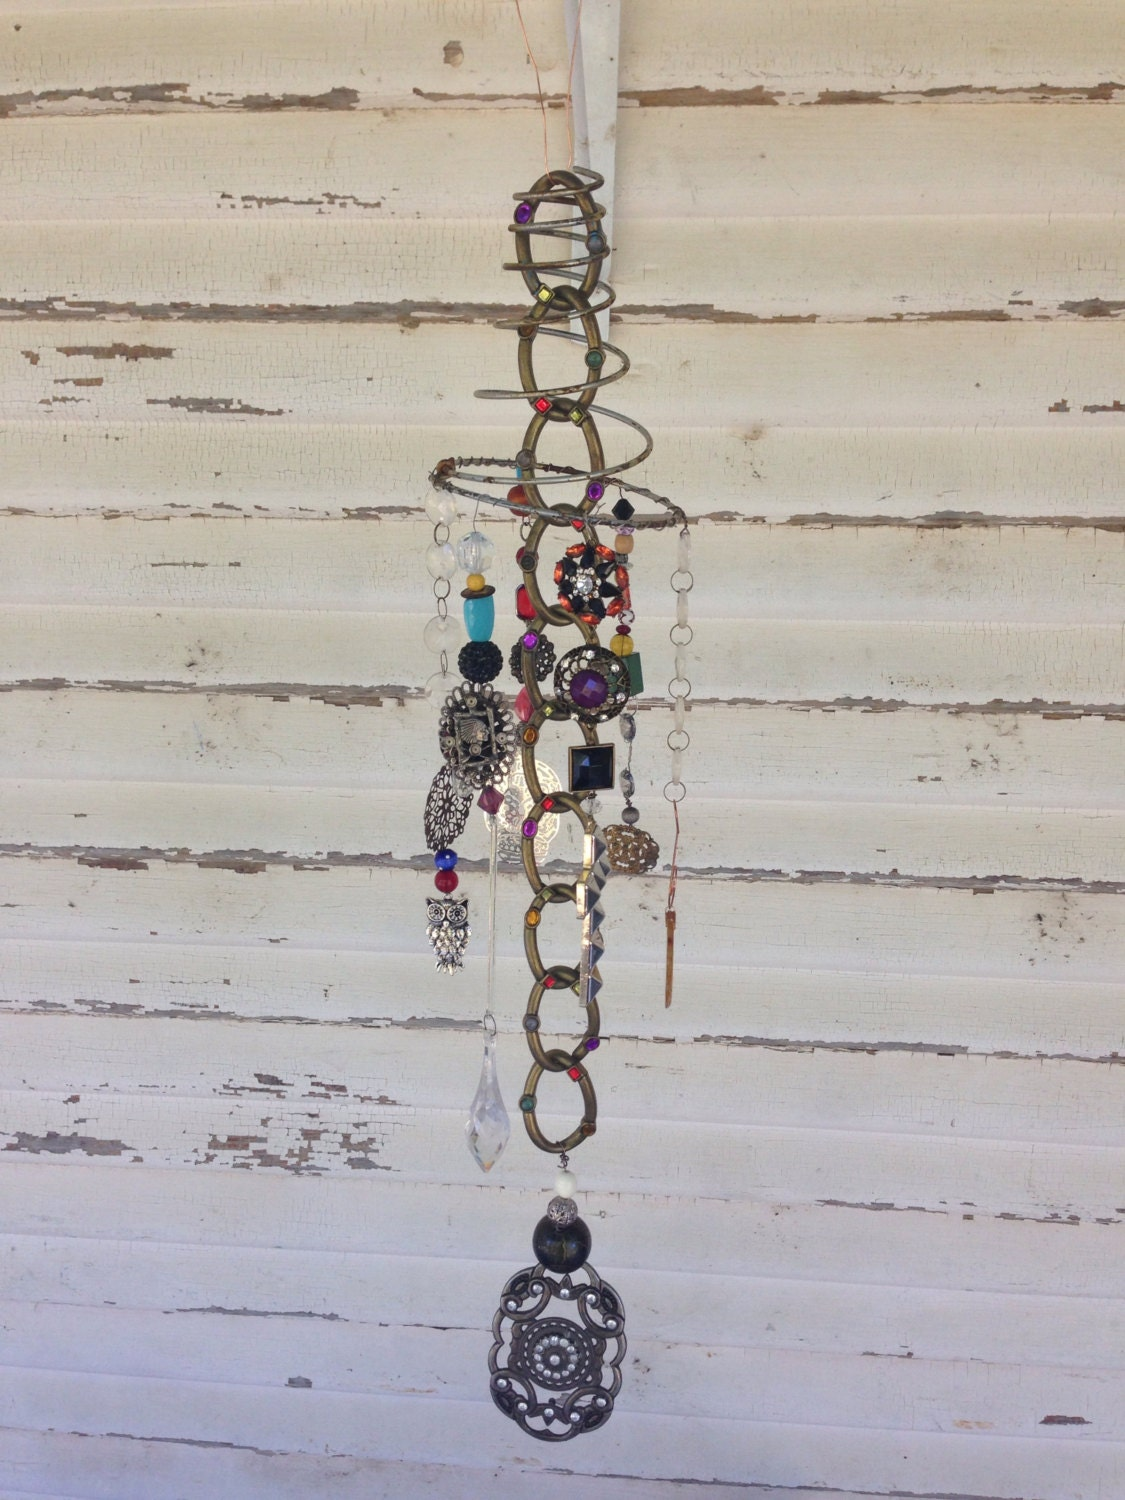 Boho recycled bedspring garden art patio decor yard art for Recycled yard decorations